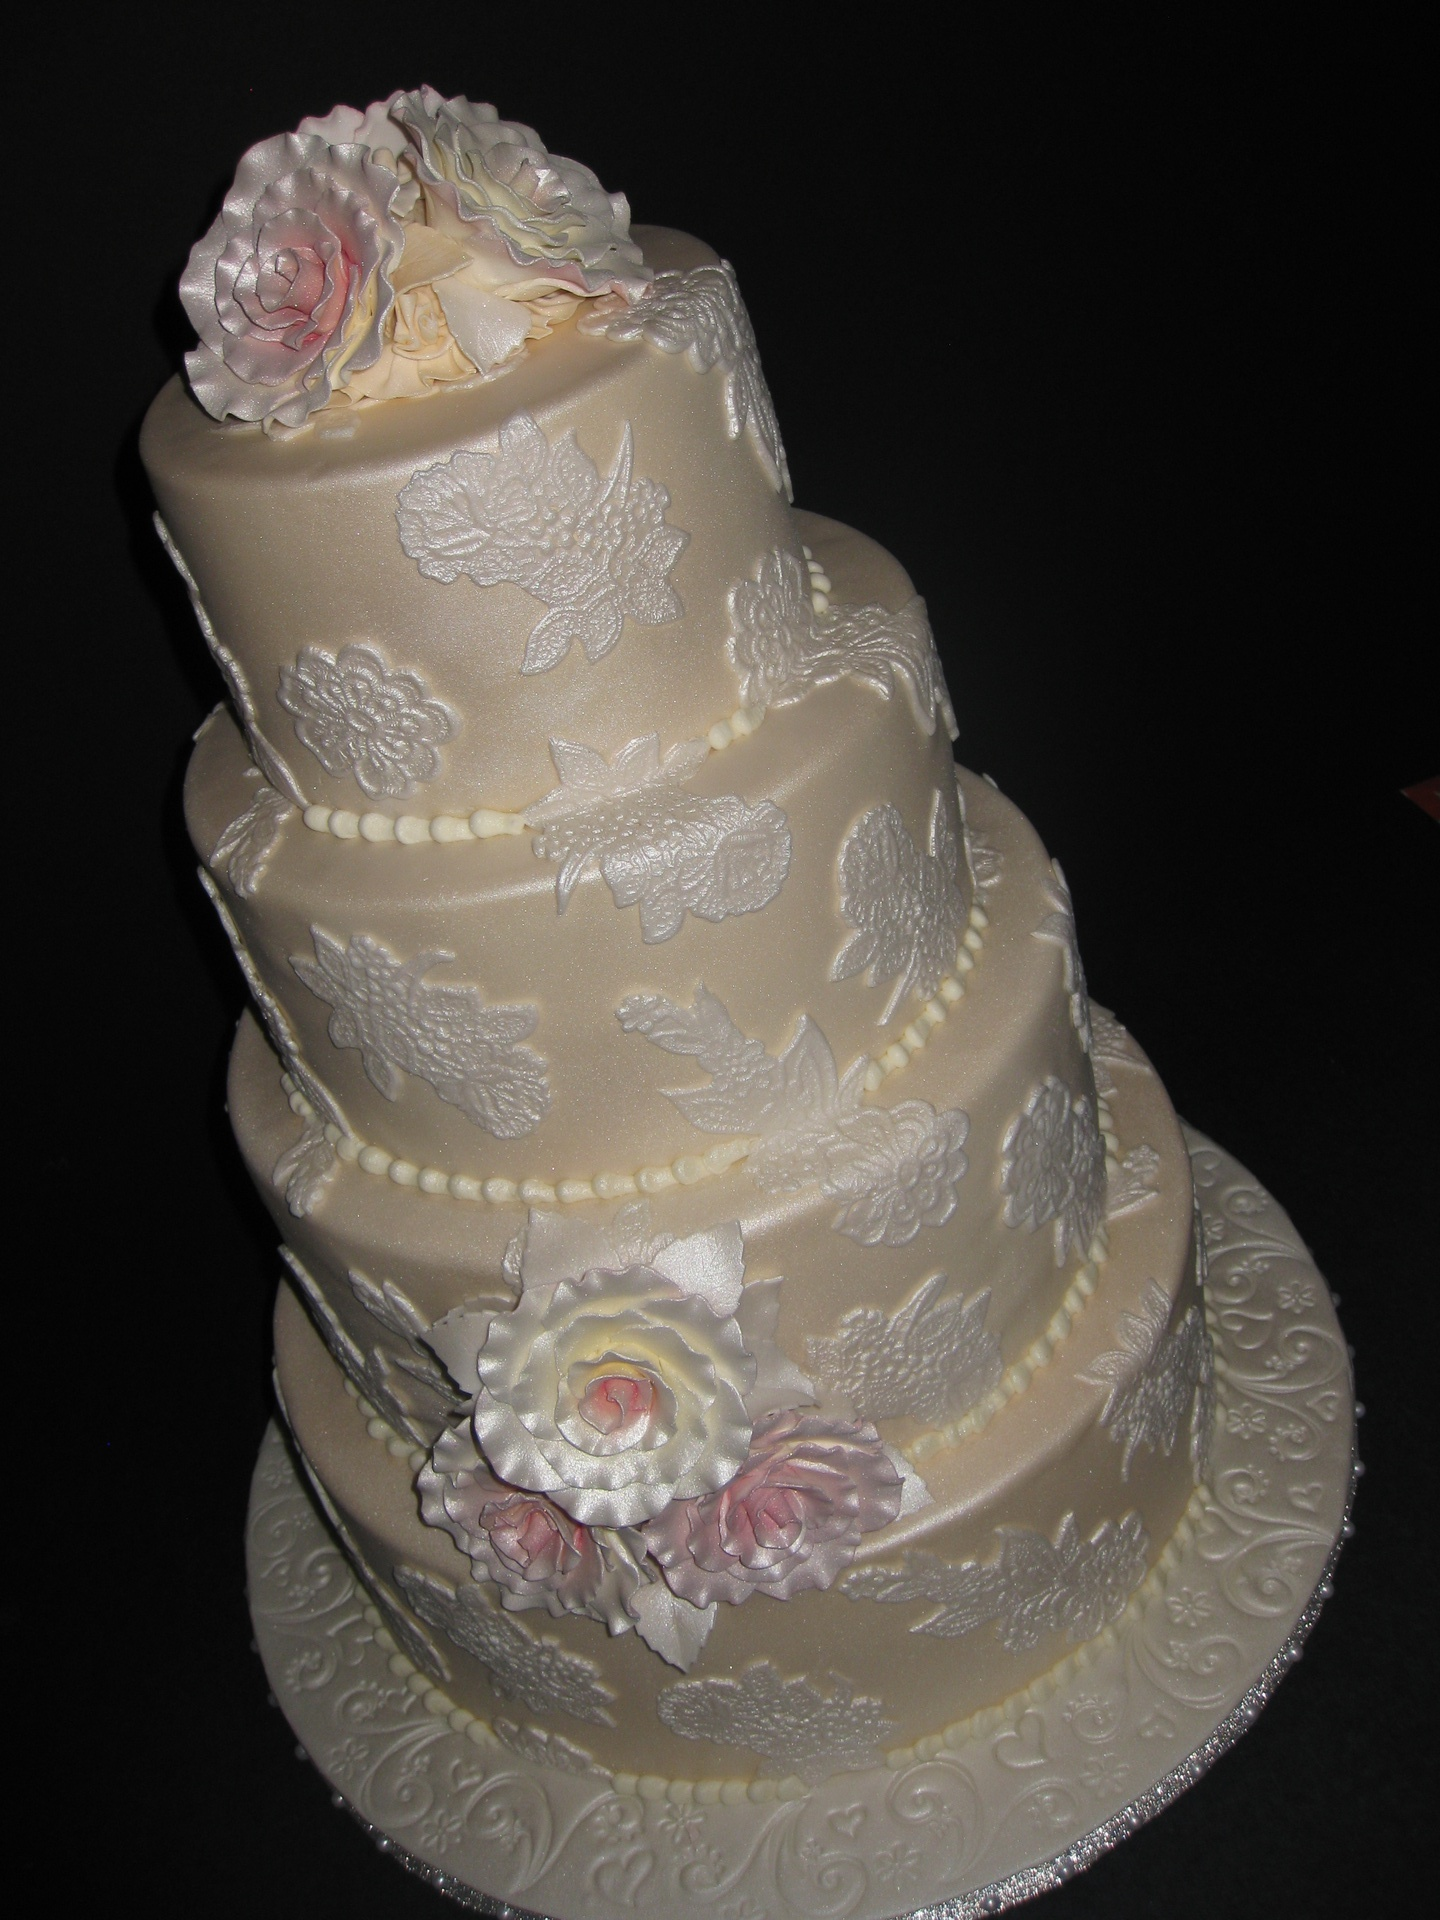 Nicole & Pete's Wedding Cake